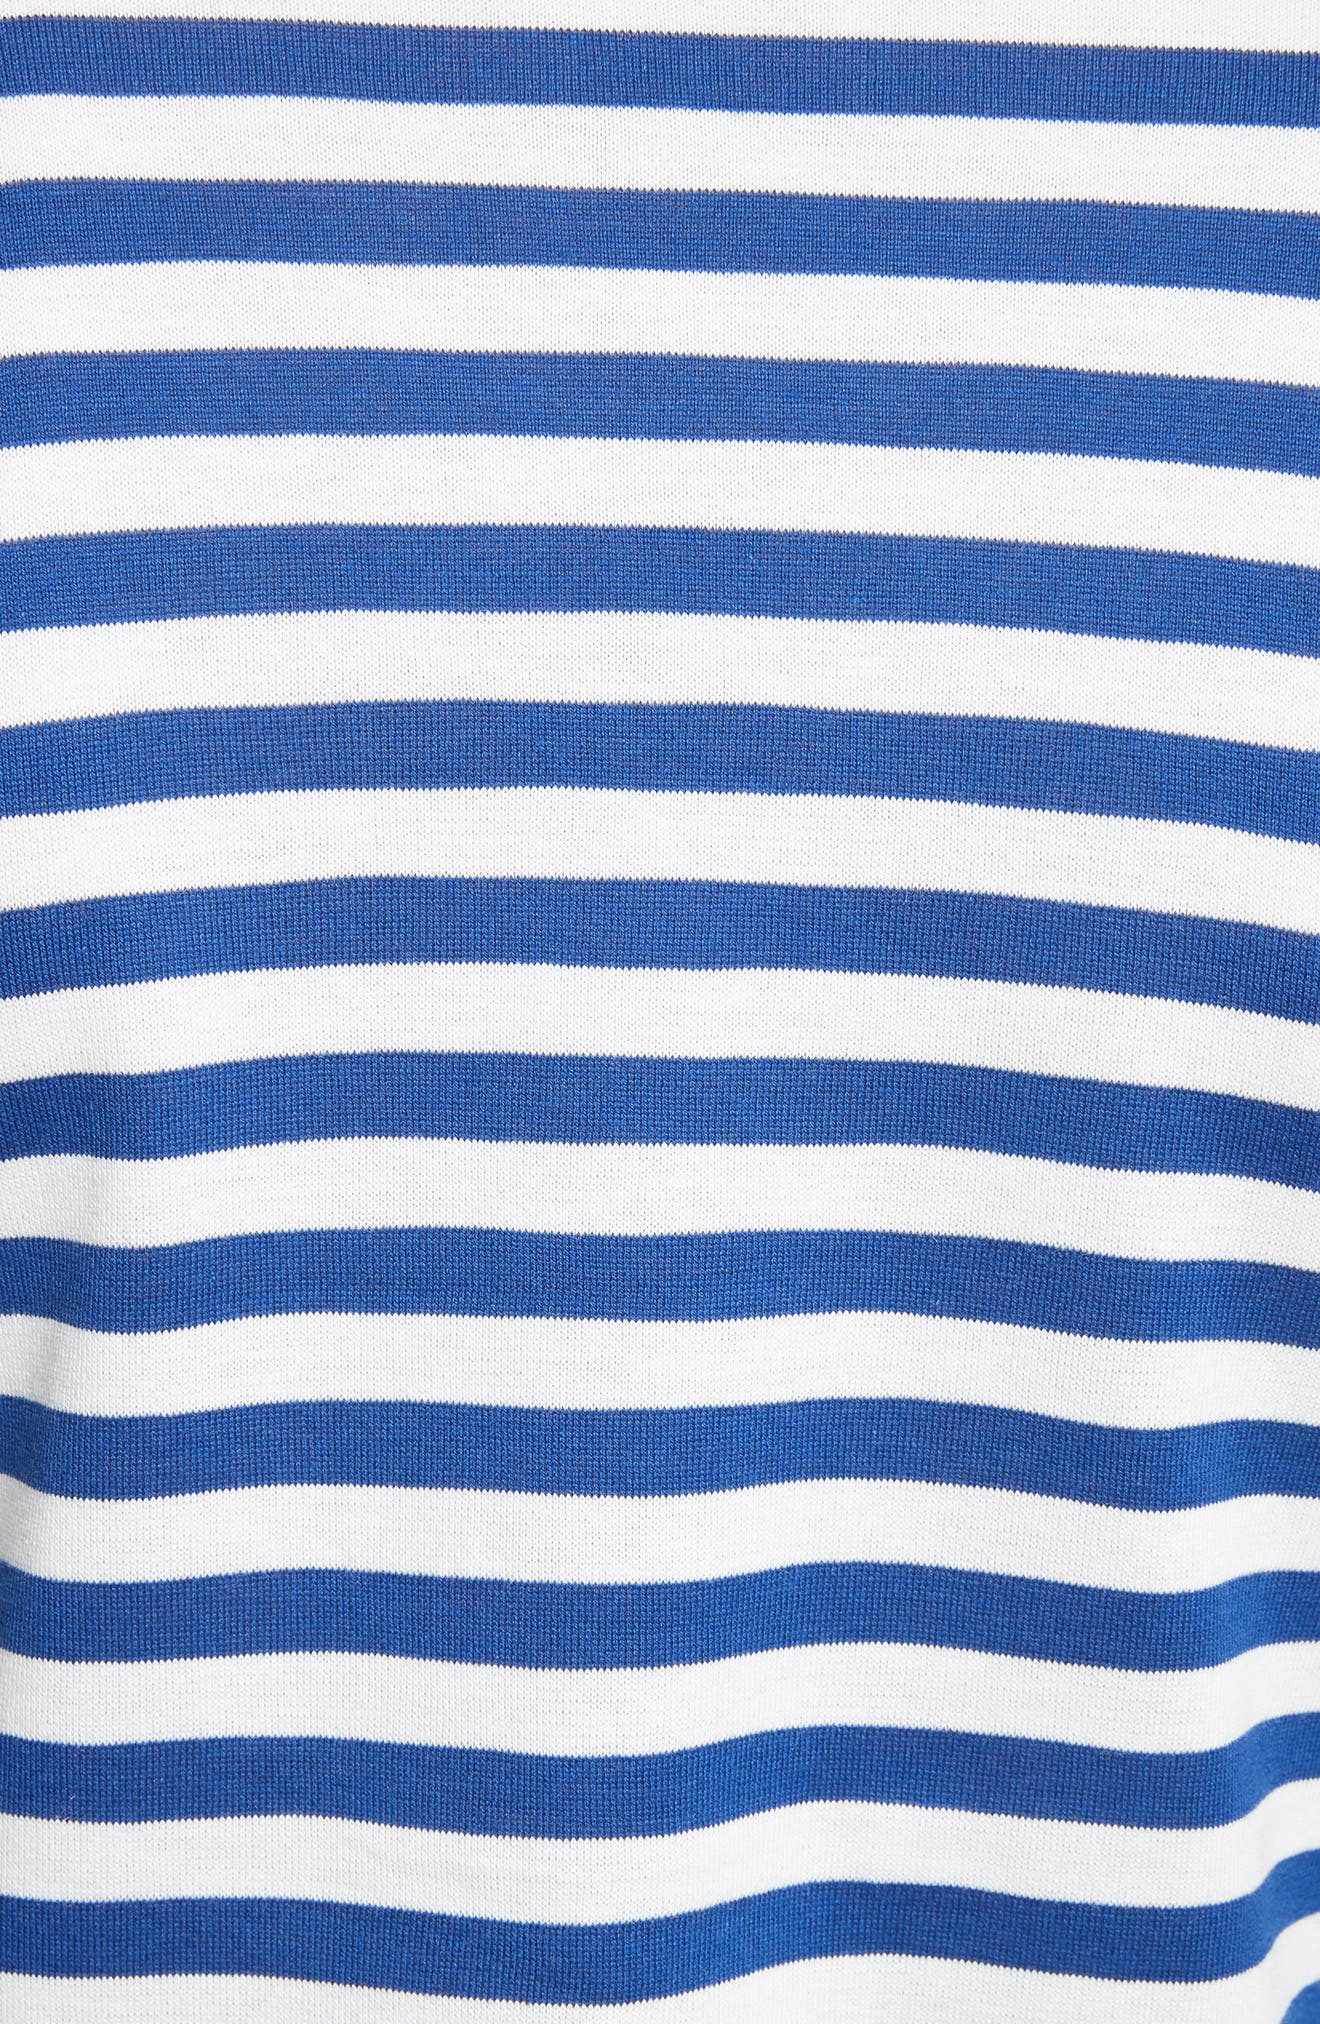 Comme des Garçons PLAY Stripe Cotton Tee,                             Alternate thumbnail 5, color,                             Navy/ White